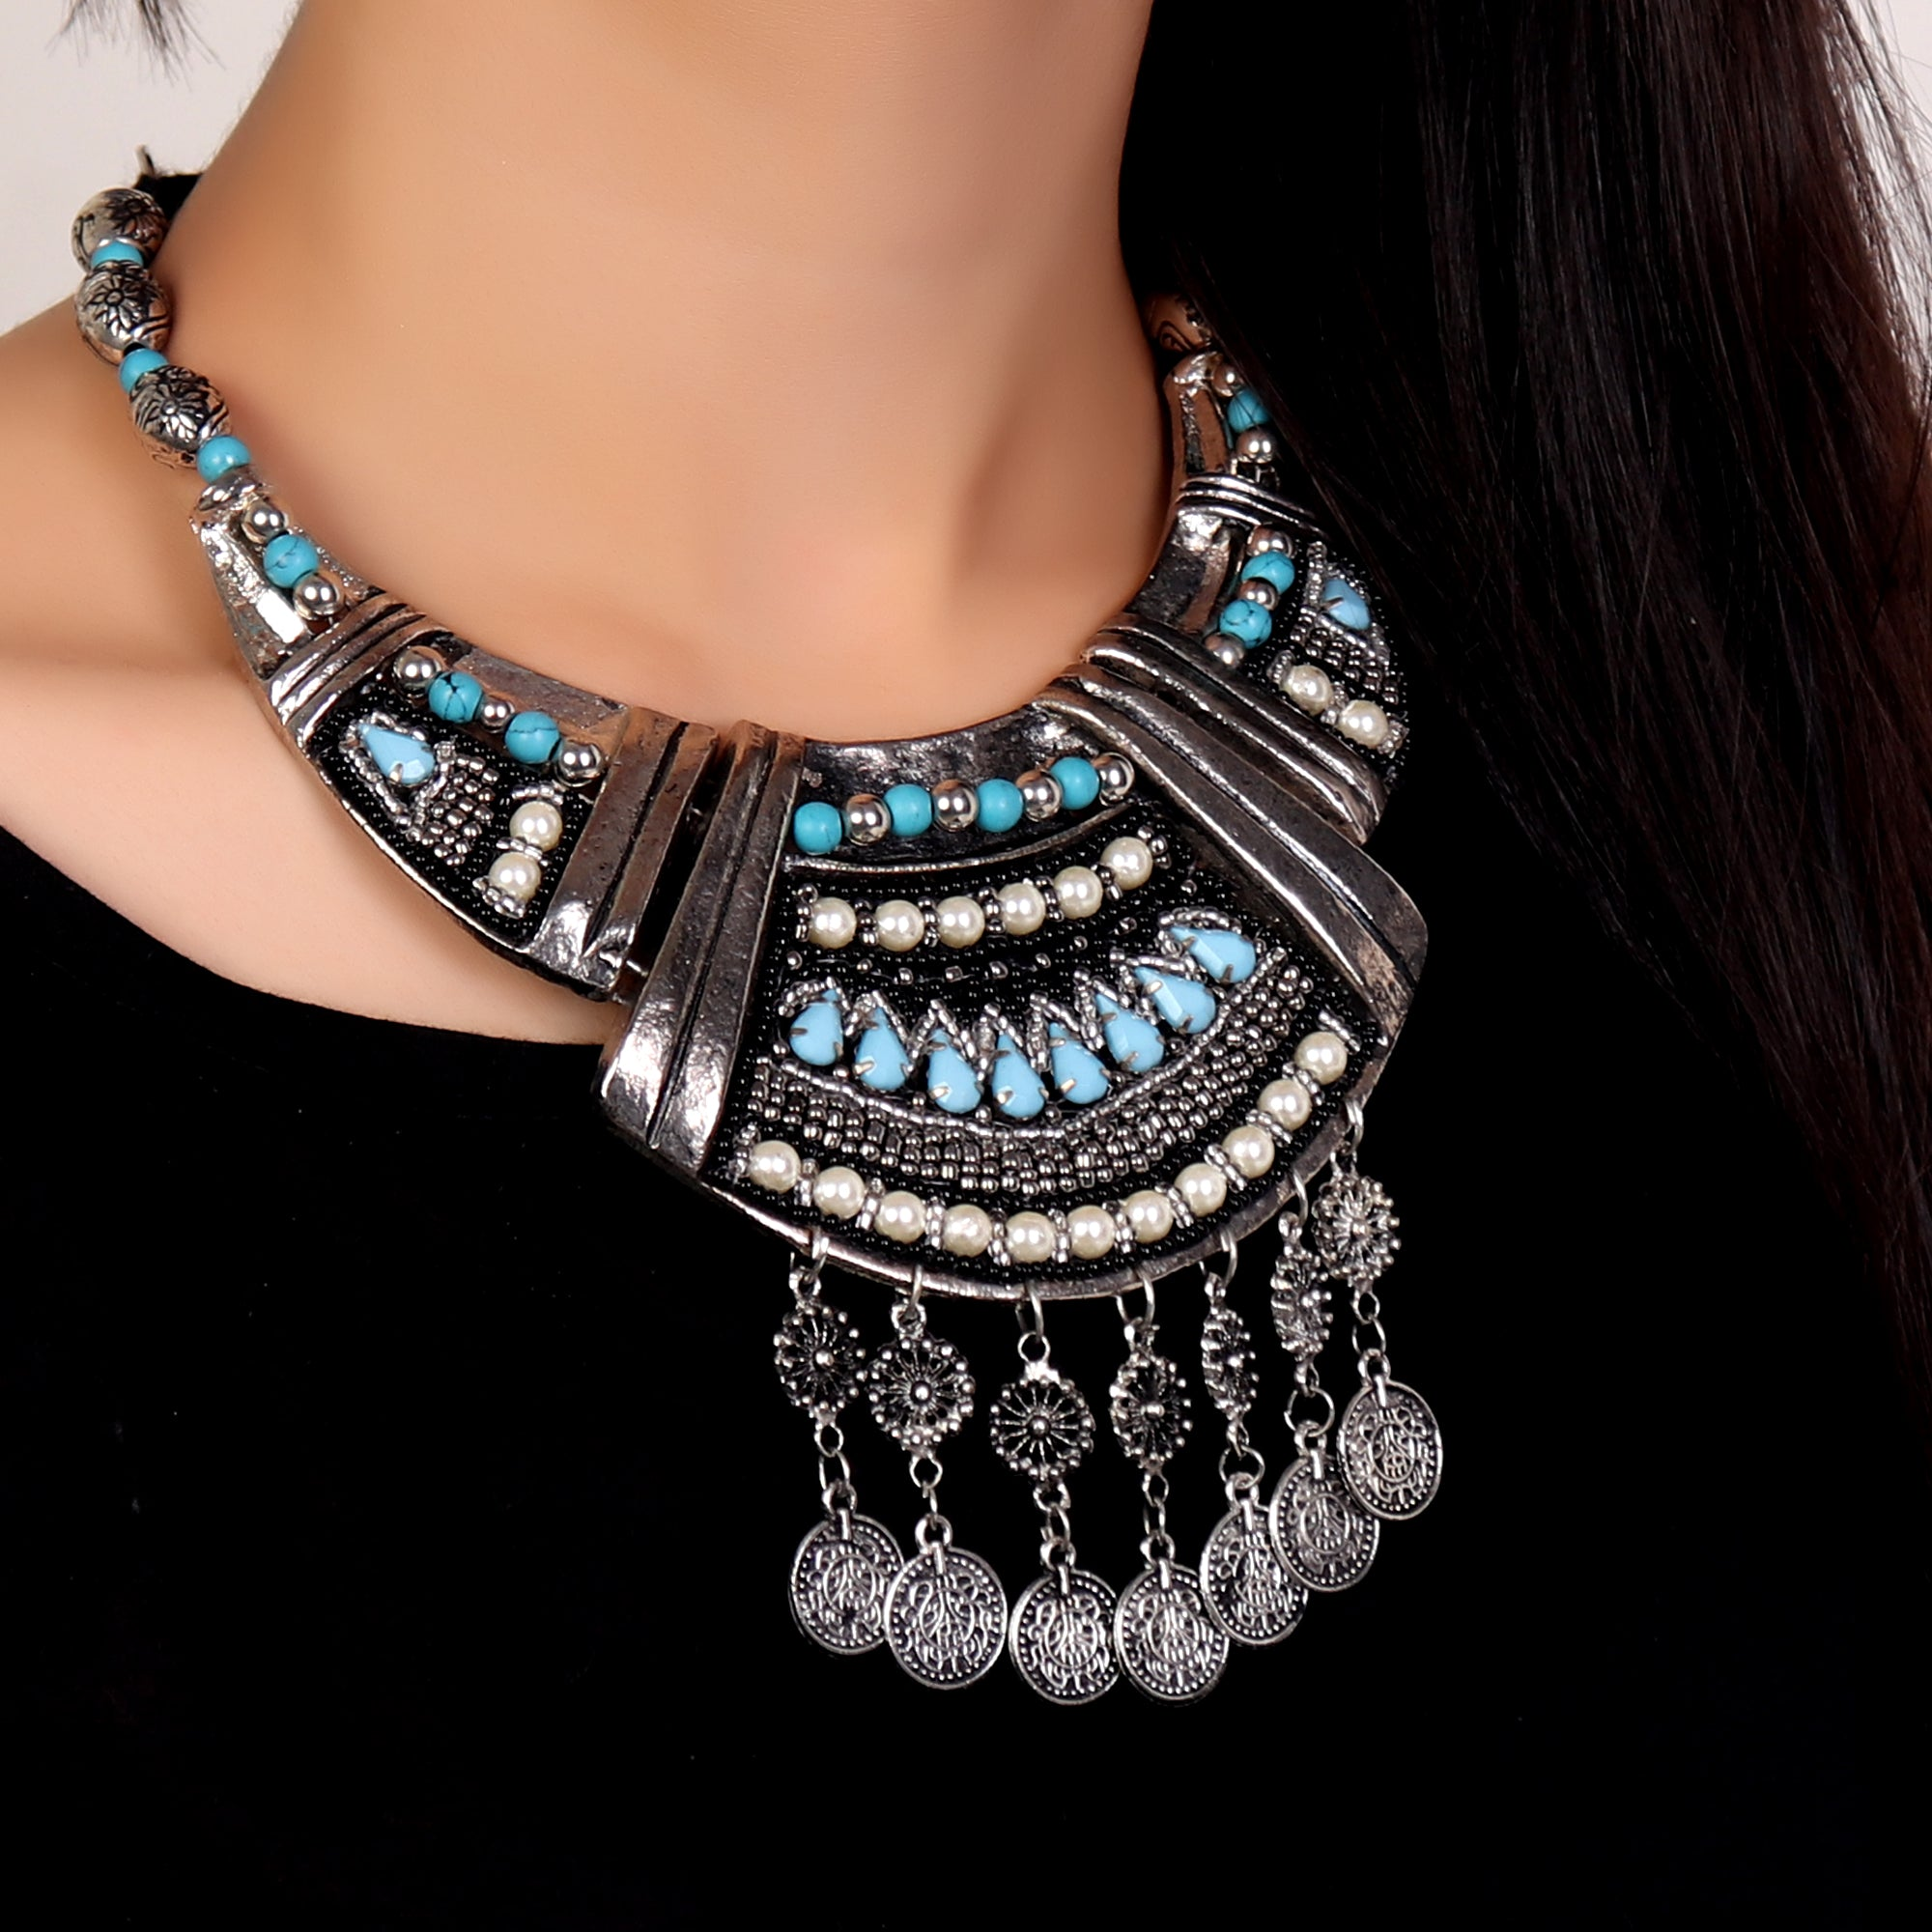 Necklace,Beaded Beauty Tribal Necklace - Cippele Multi Store